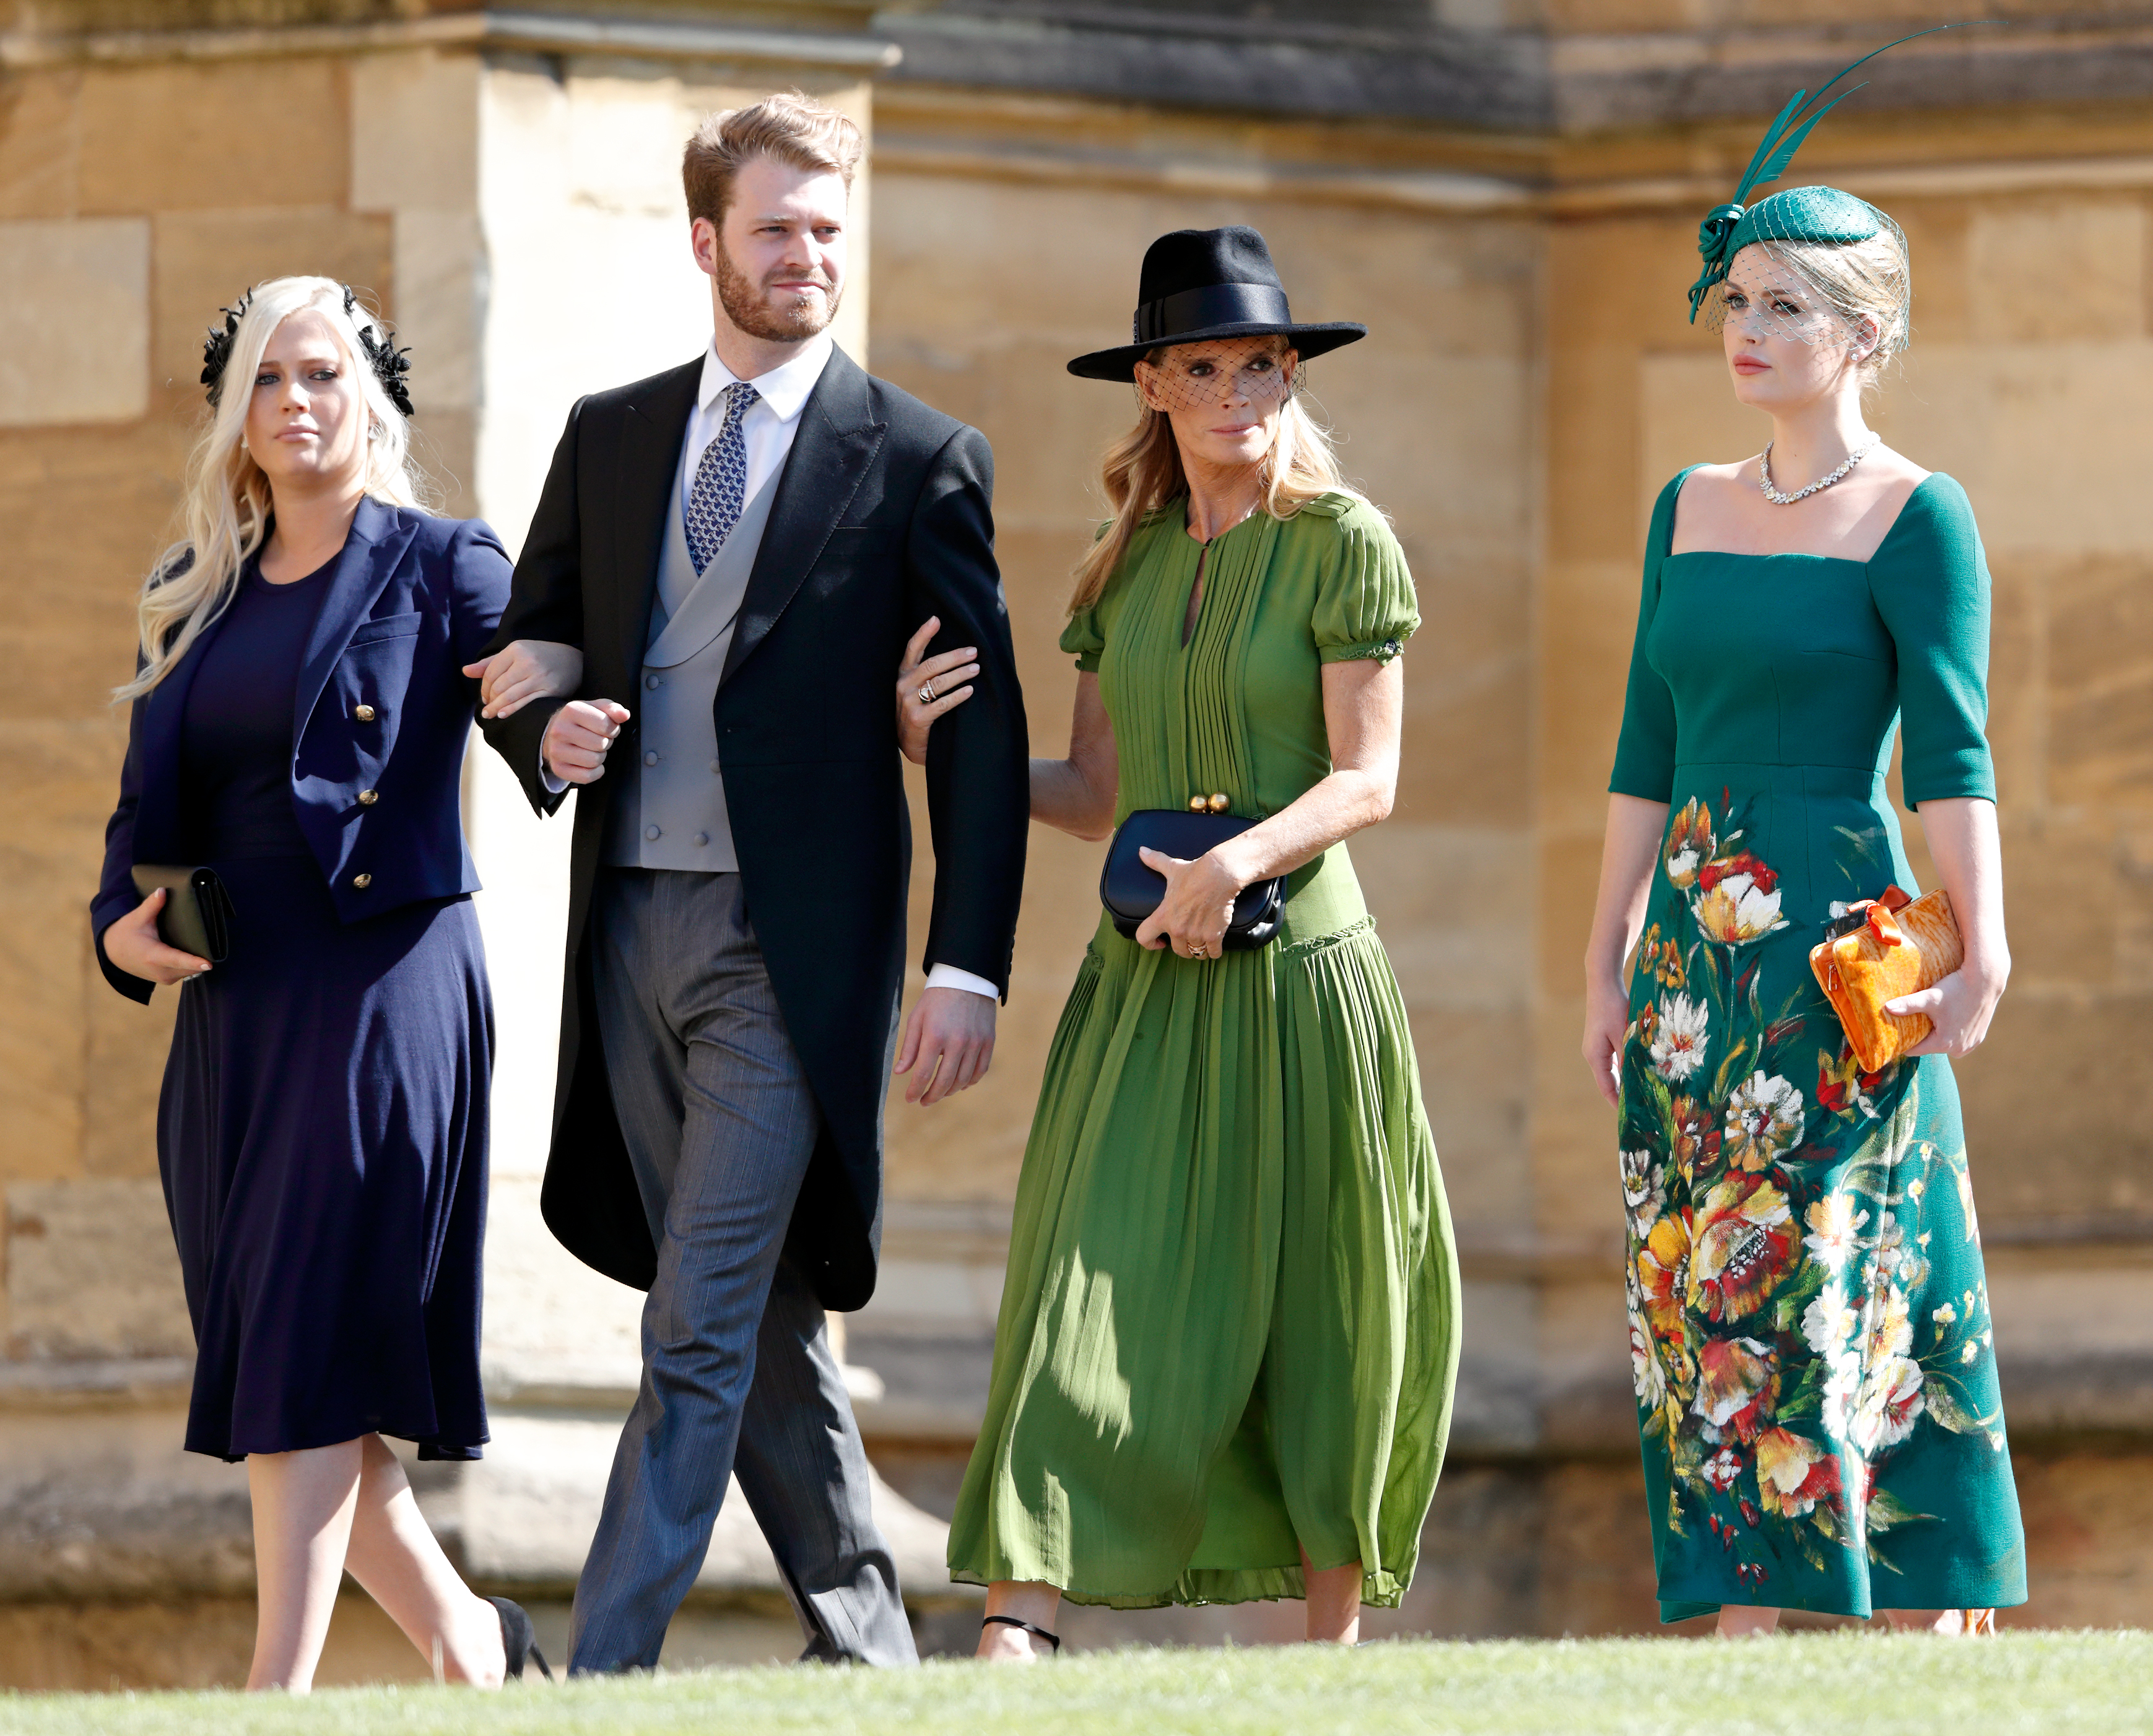 Lady Eliza Spencer, Louis Spencer, Viscount Althorp, Victoria Aitken y Lady Kitty Spencer.